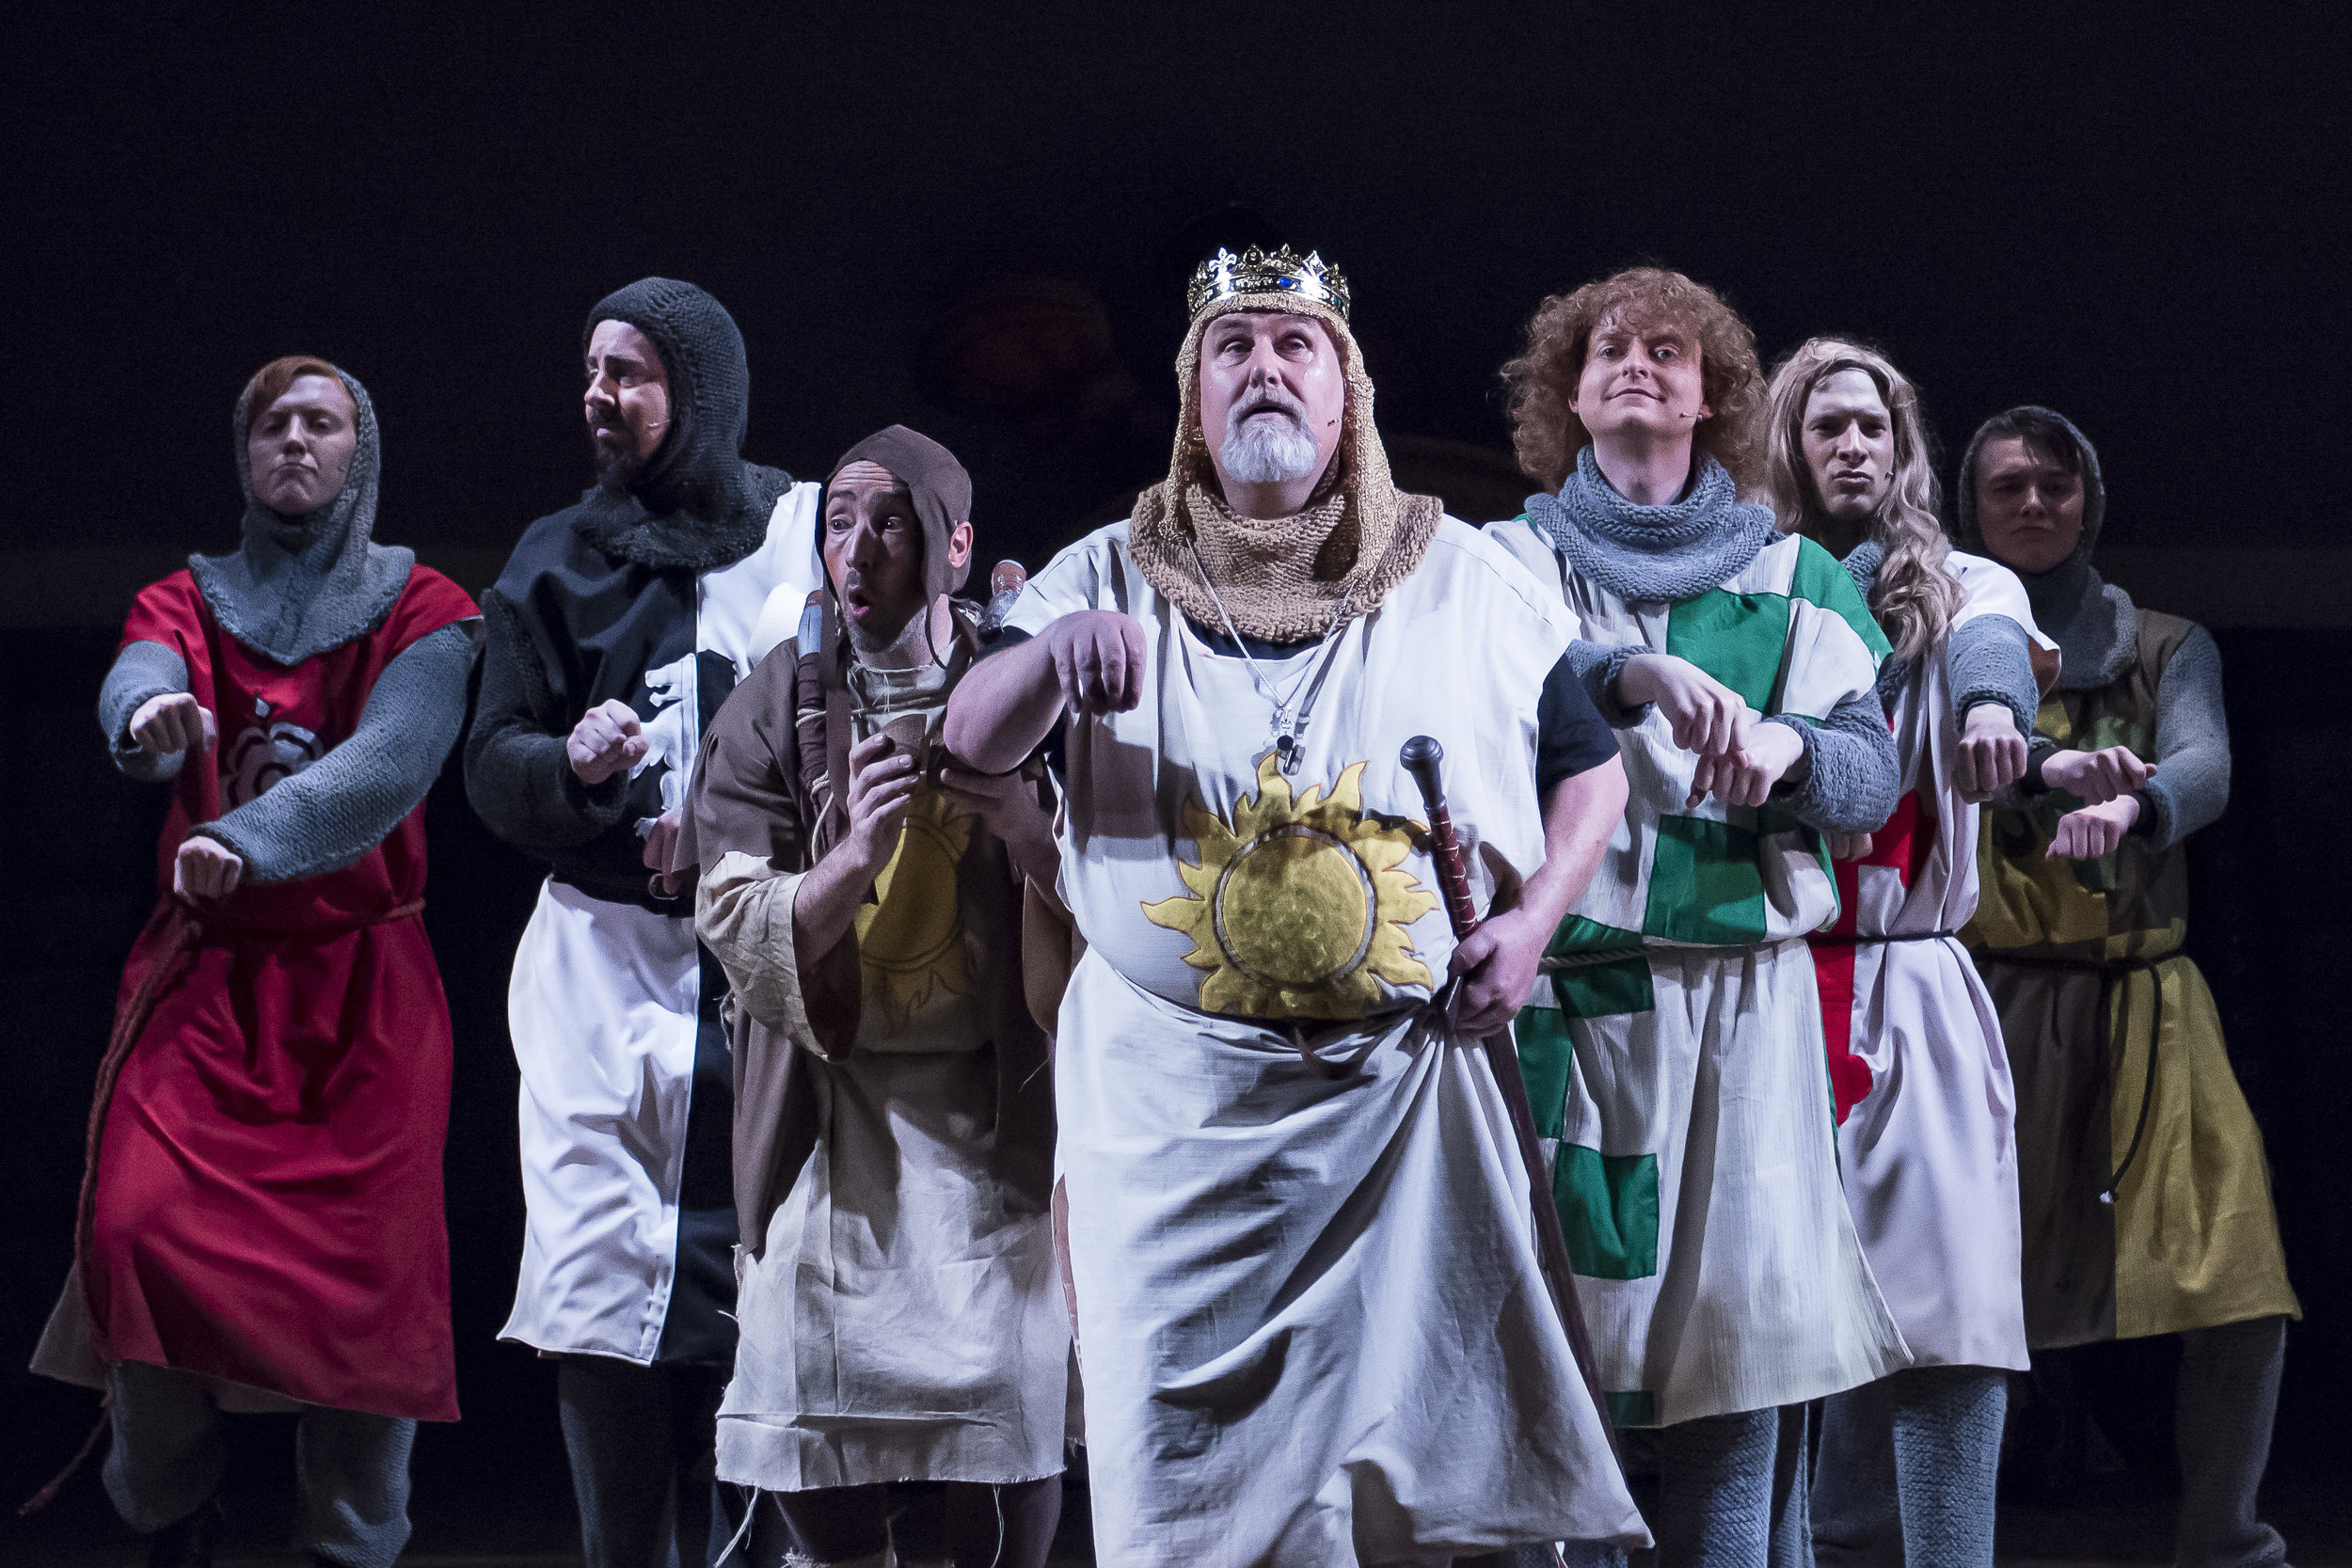 Colin Flaherty as King Arthur (Centre), Richard Bond as Patsy (Centre Left) and some Knights